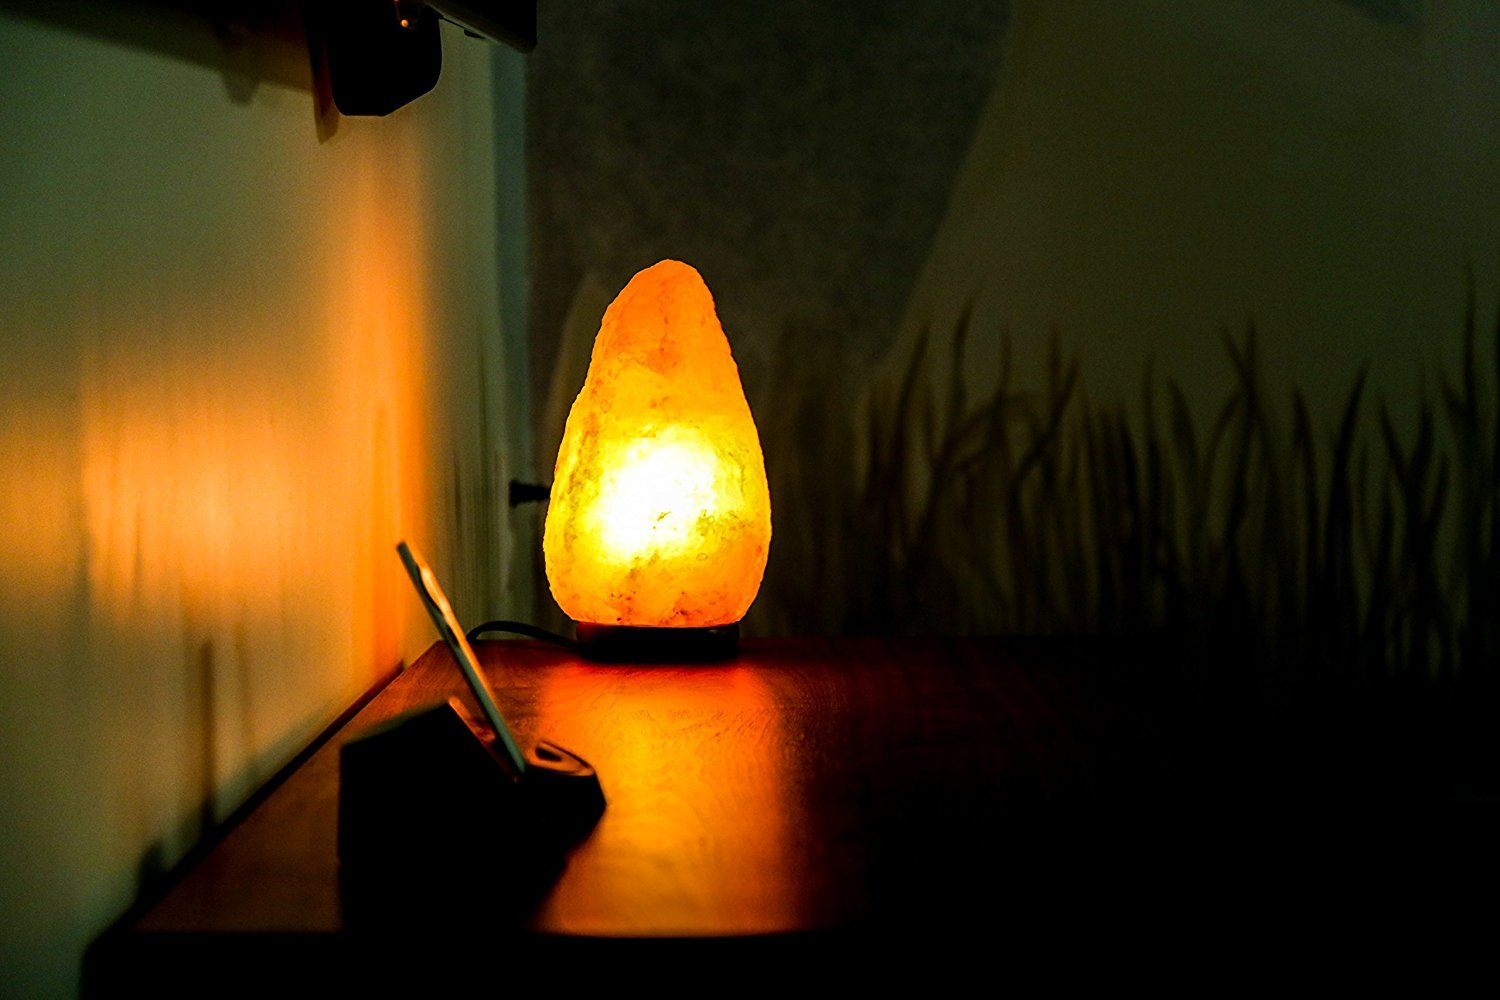 8 to 9 Inch Himalayan Salt Lamp Hand Carved, Natural Wood Base with Dimmer Control, 6-9 lb. Mined from Himalayan Mountain Range, Beautiful Amber Color, 100% Authentic Himalayan Salt Lamp by IKON (Image #6)